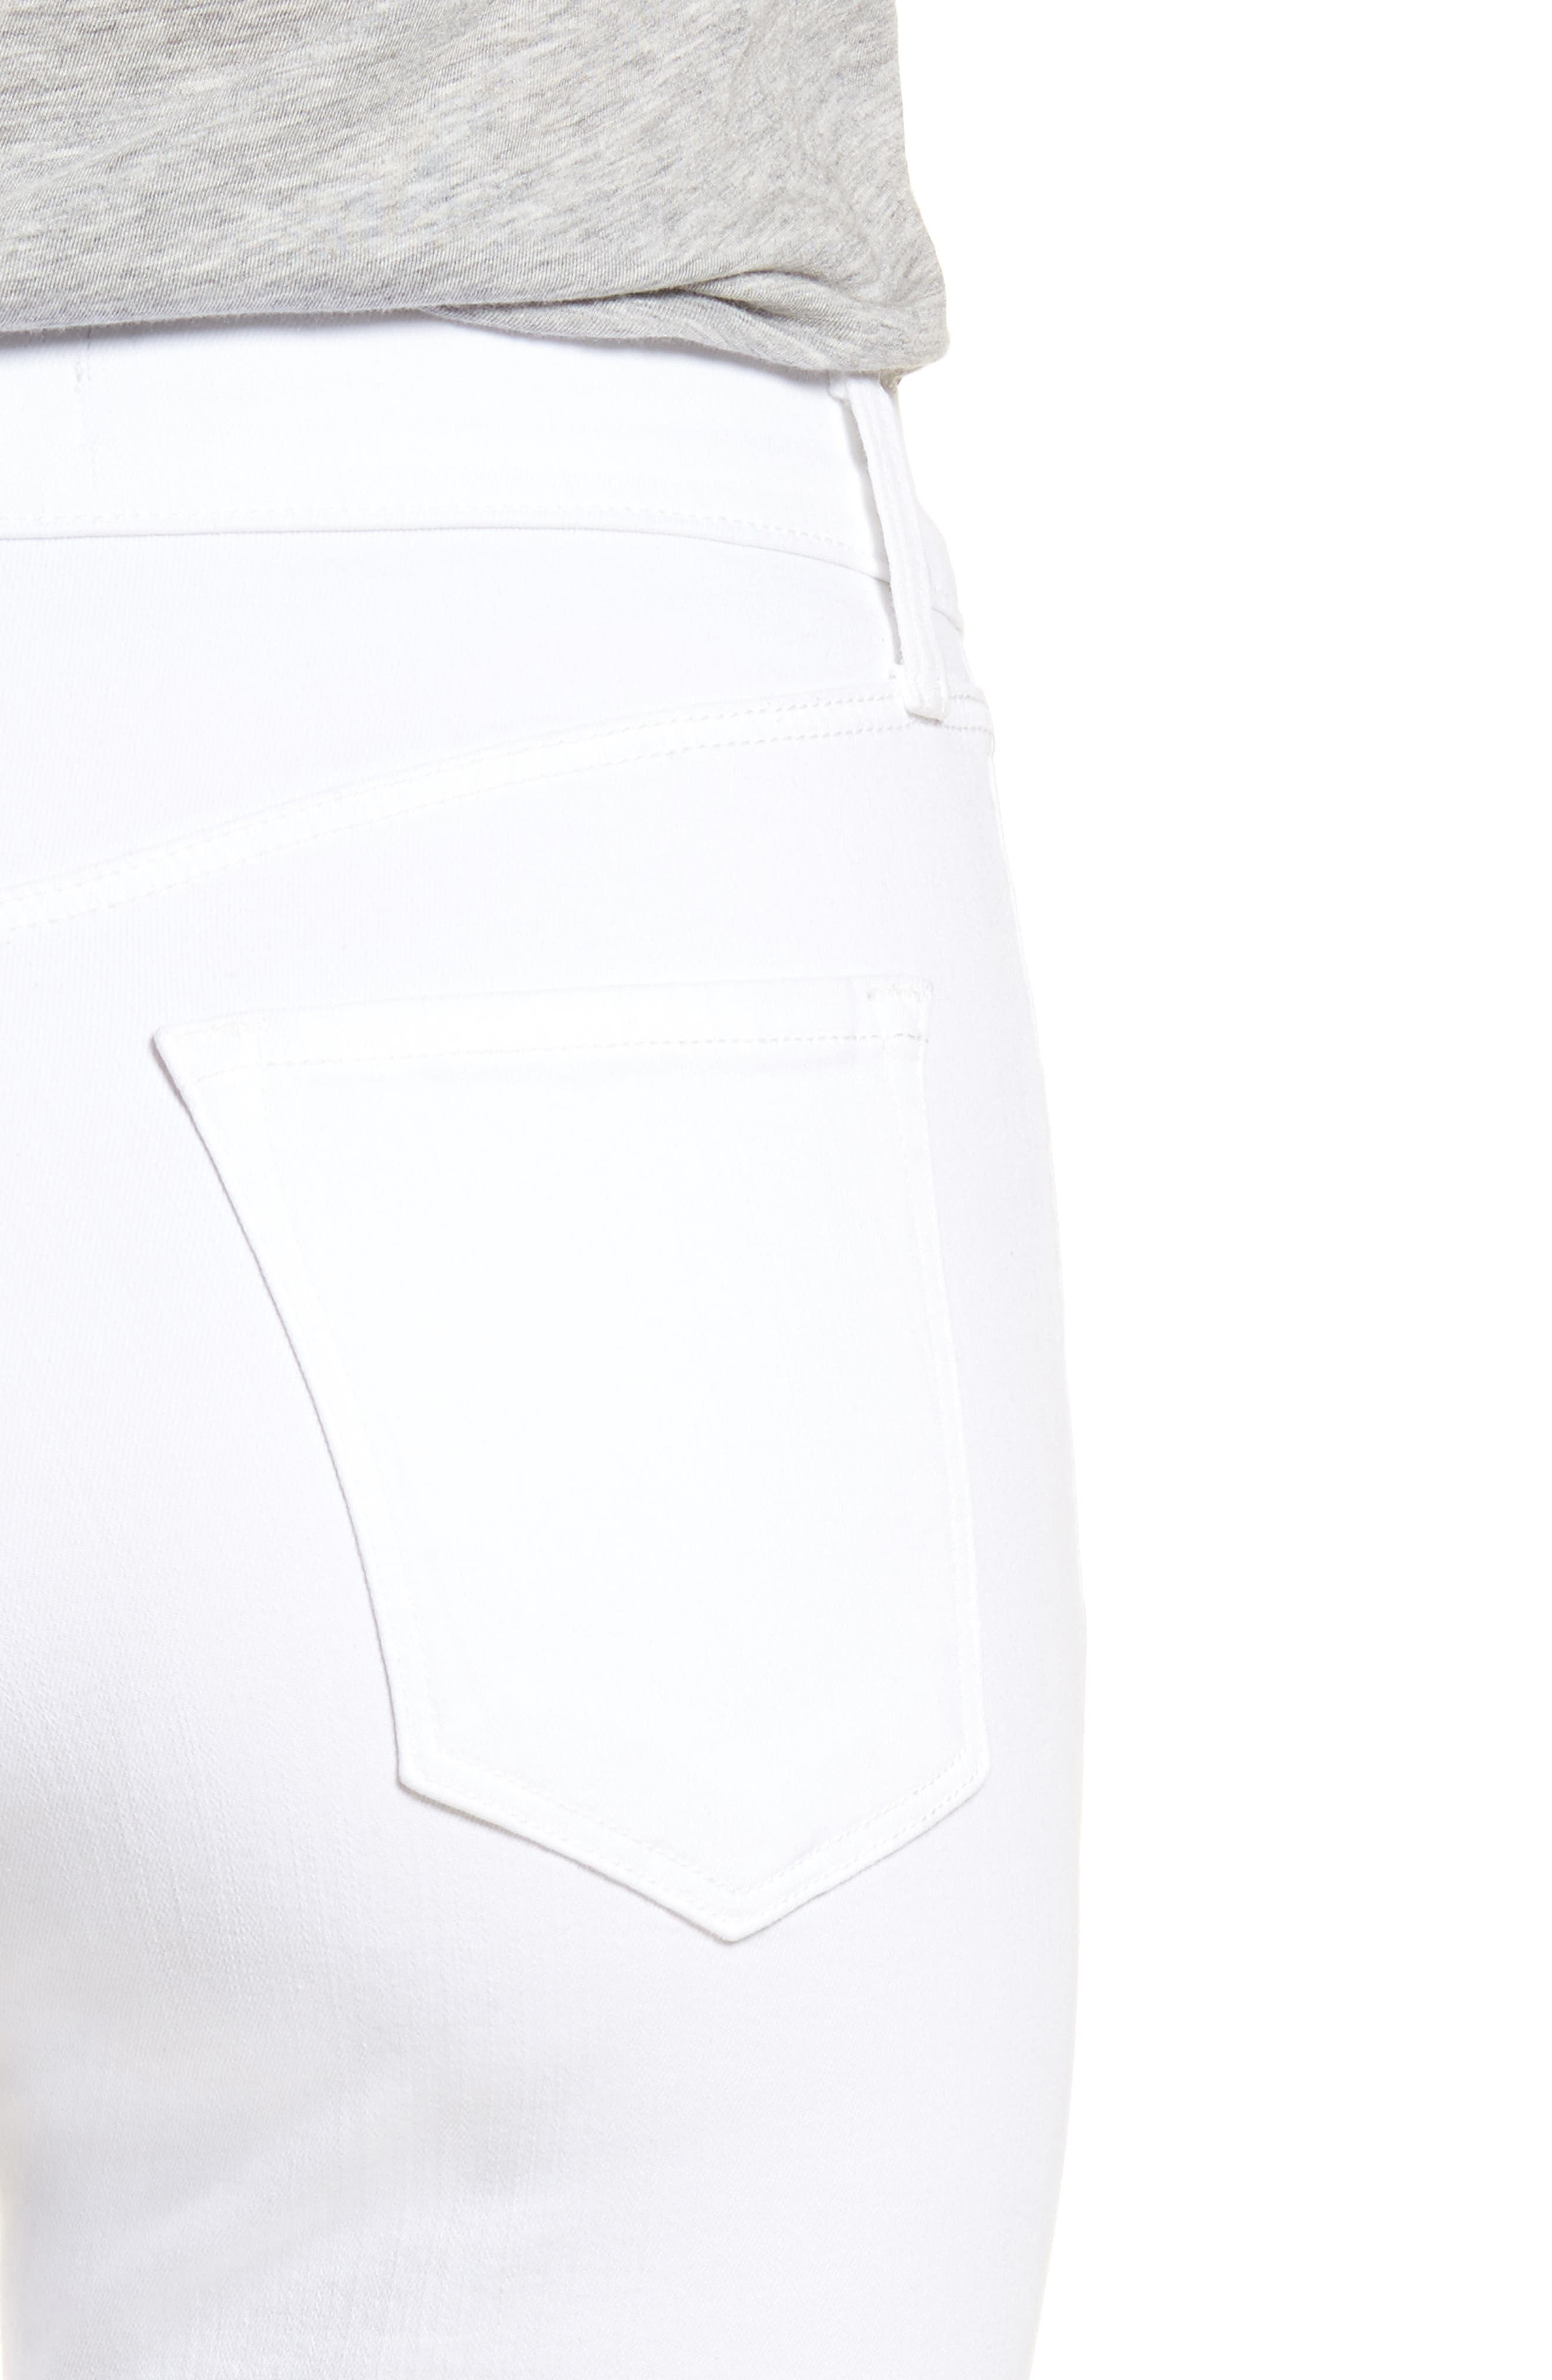 Maria High Waist Skinny Jeans,                             Alternate thumbnail 4, color,                             WHITE